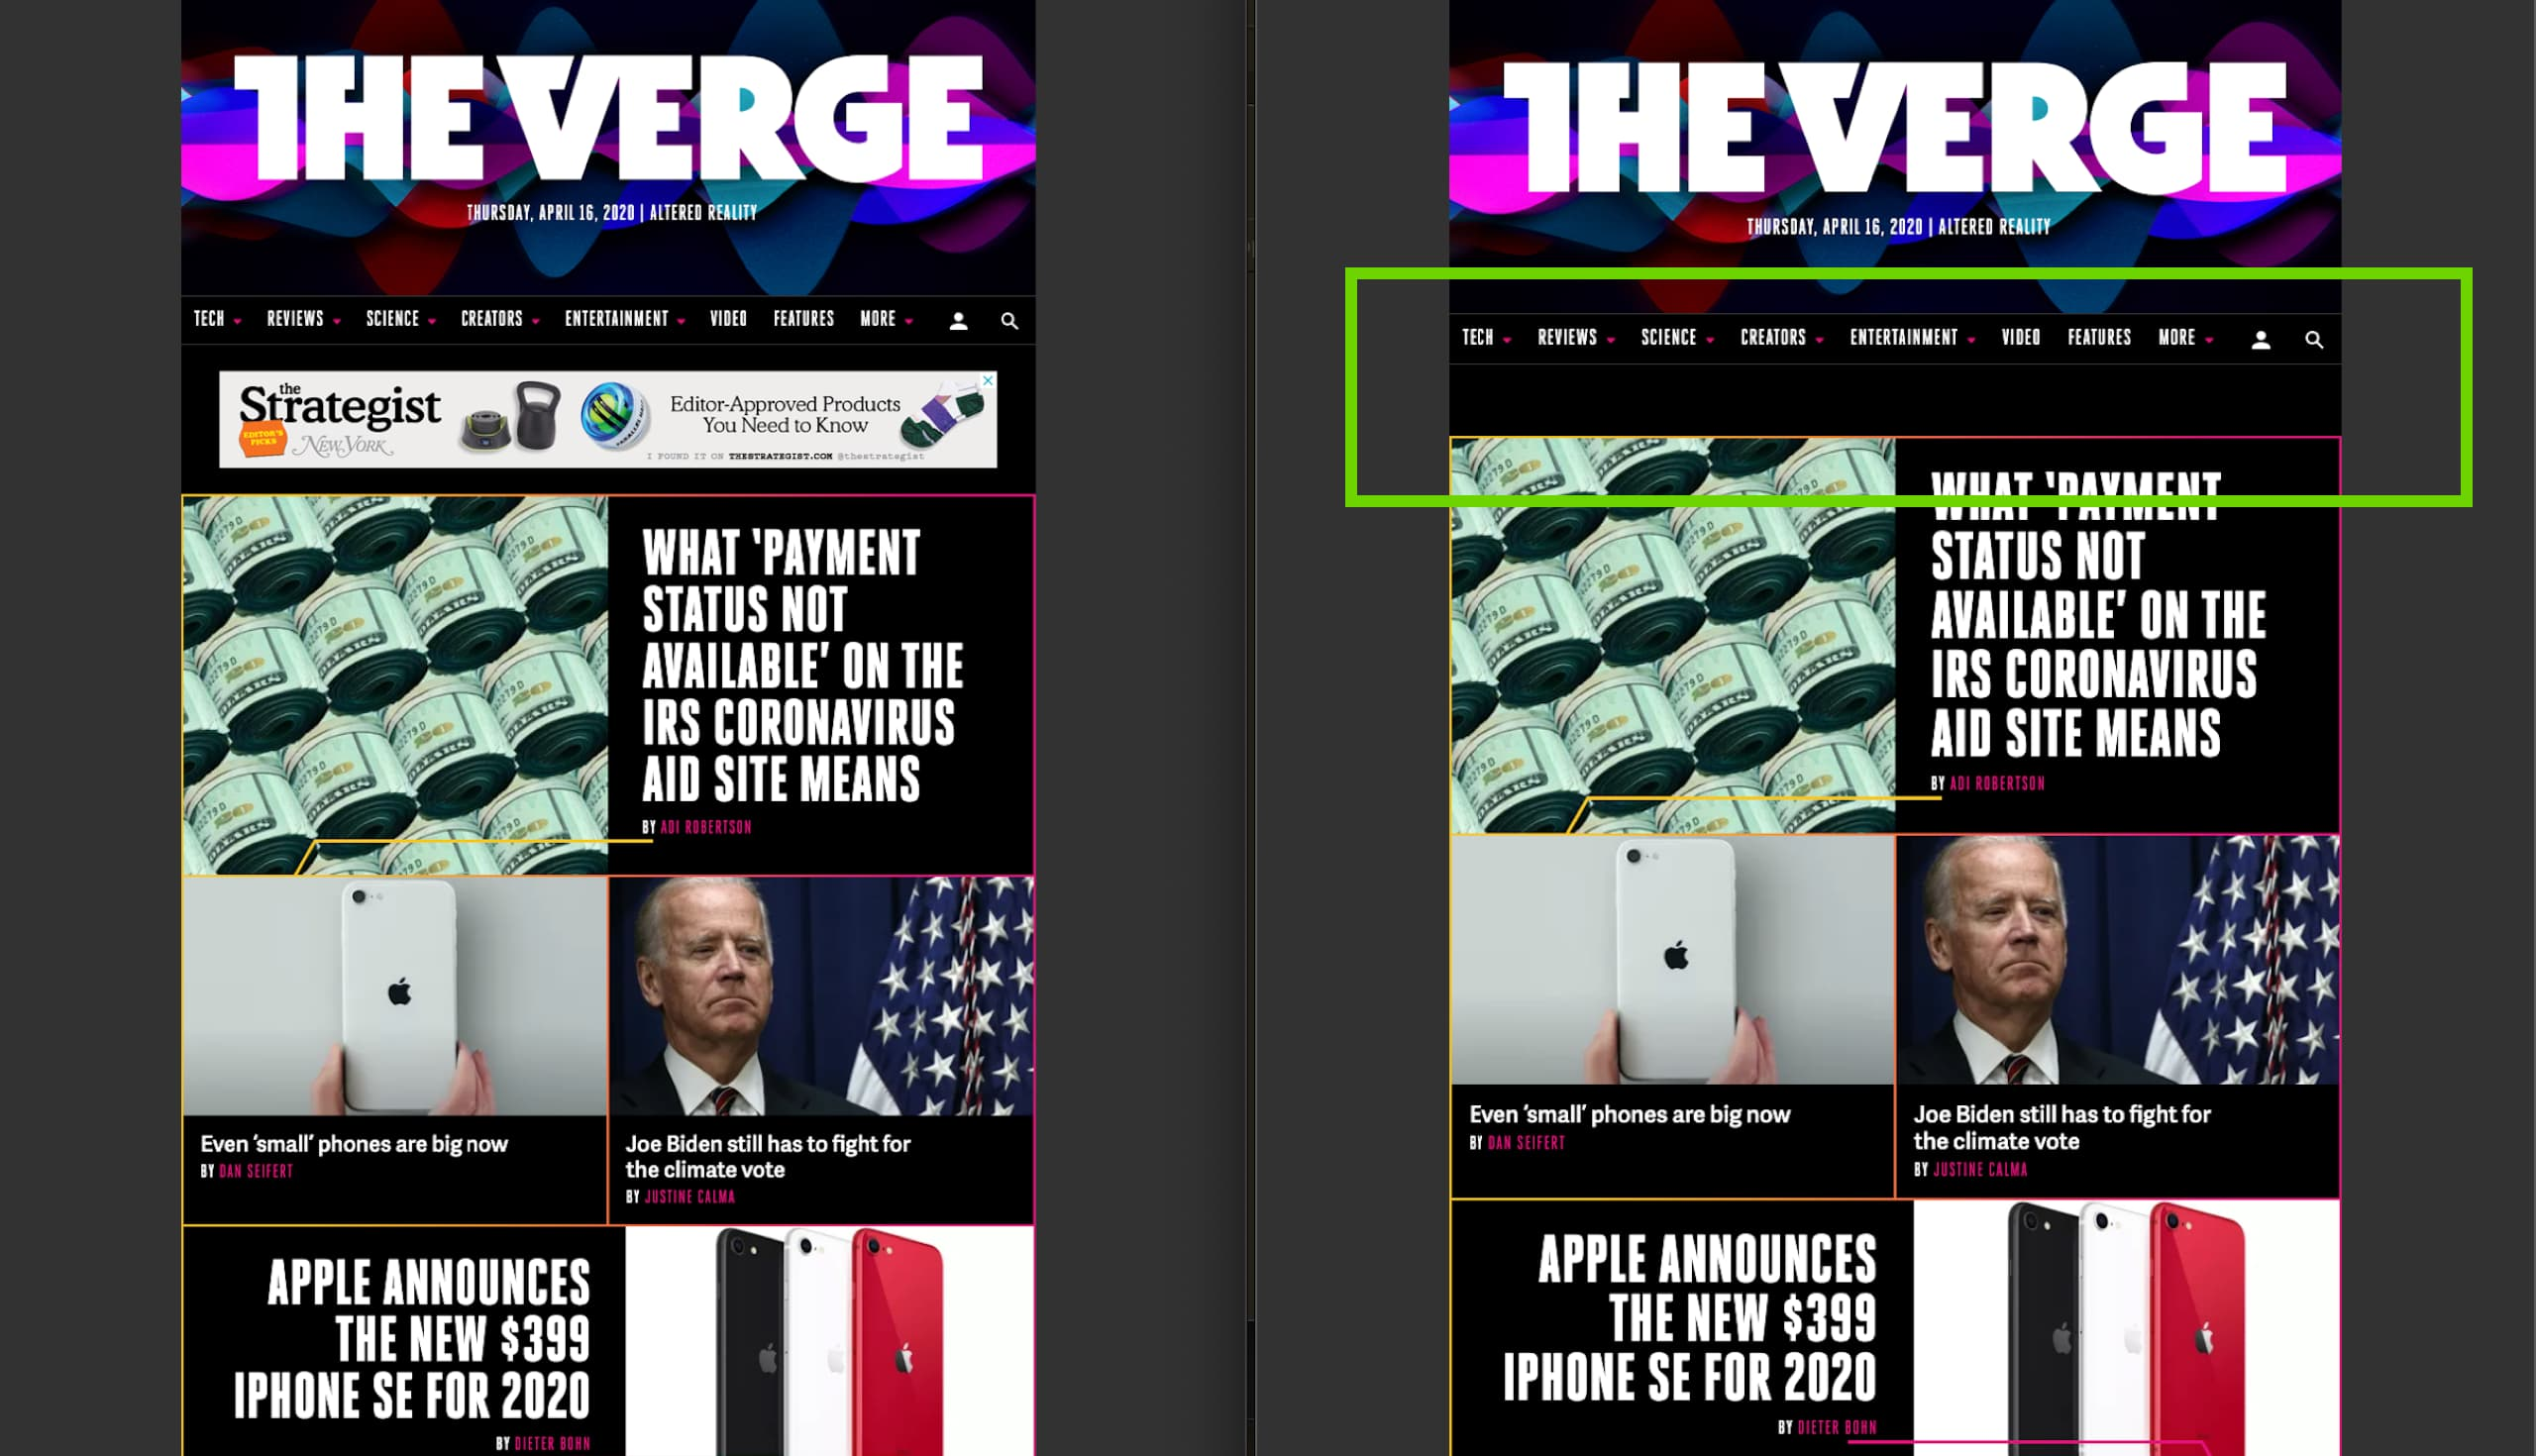 The Verge before/after domain blocking